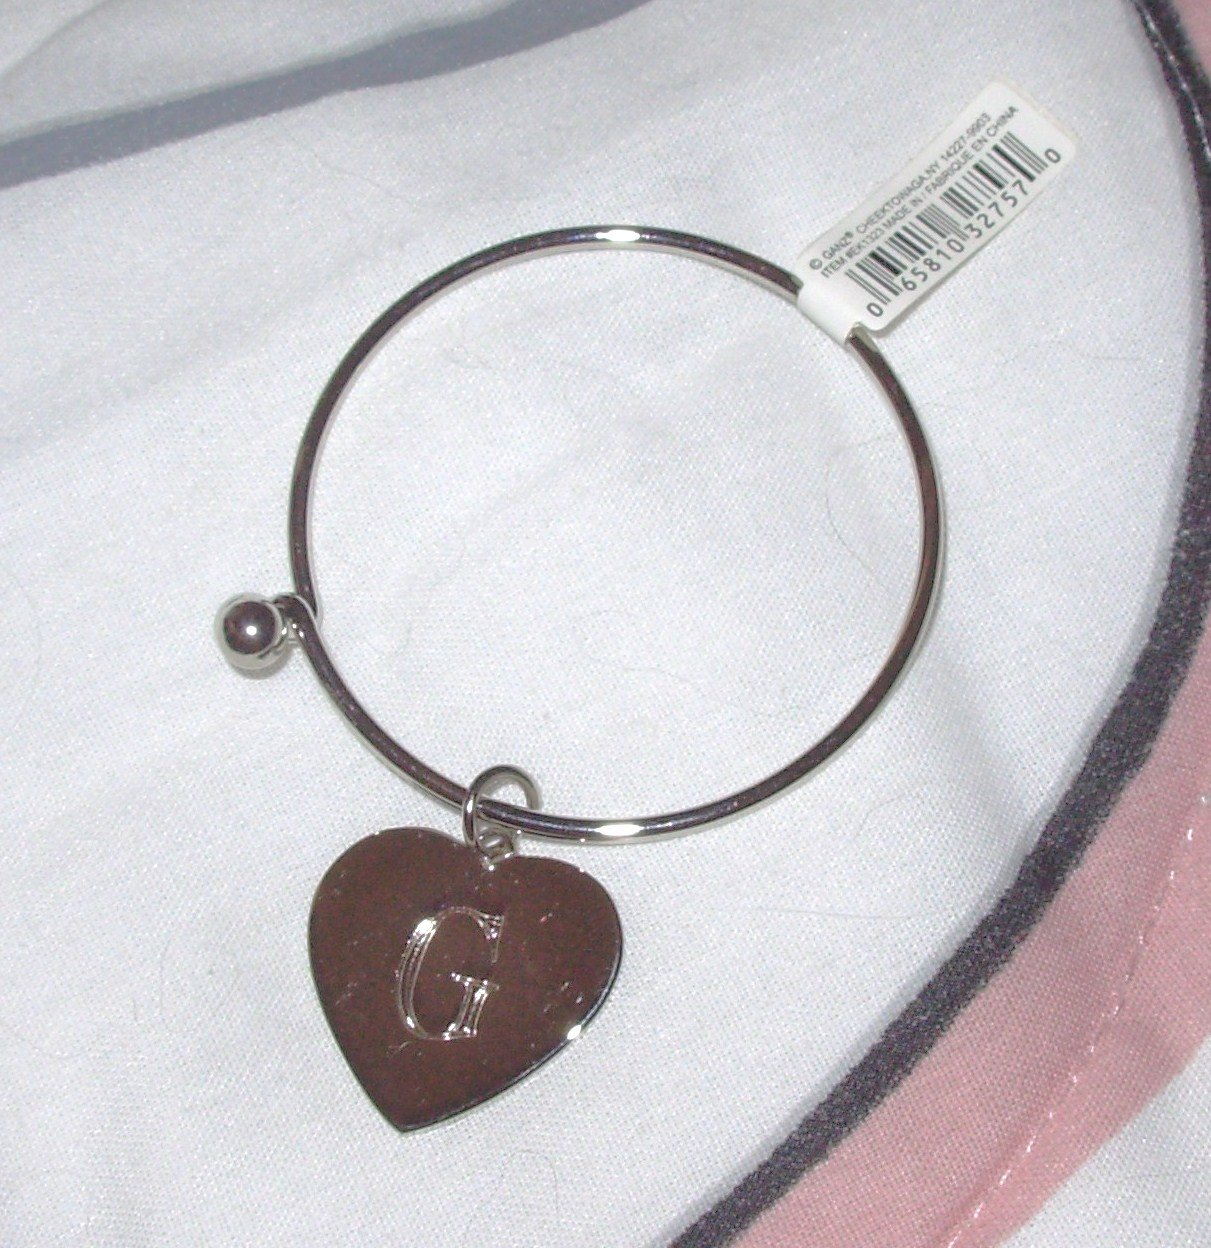 BRACELET HEART CHARM INITIAL G NEW SILVER COLORED METAL SPRING BALL CLOSURE CHILD OR YOUNG LADIES